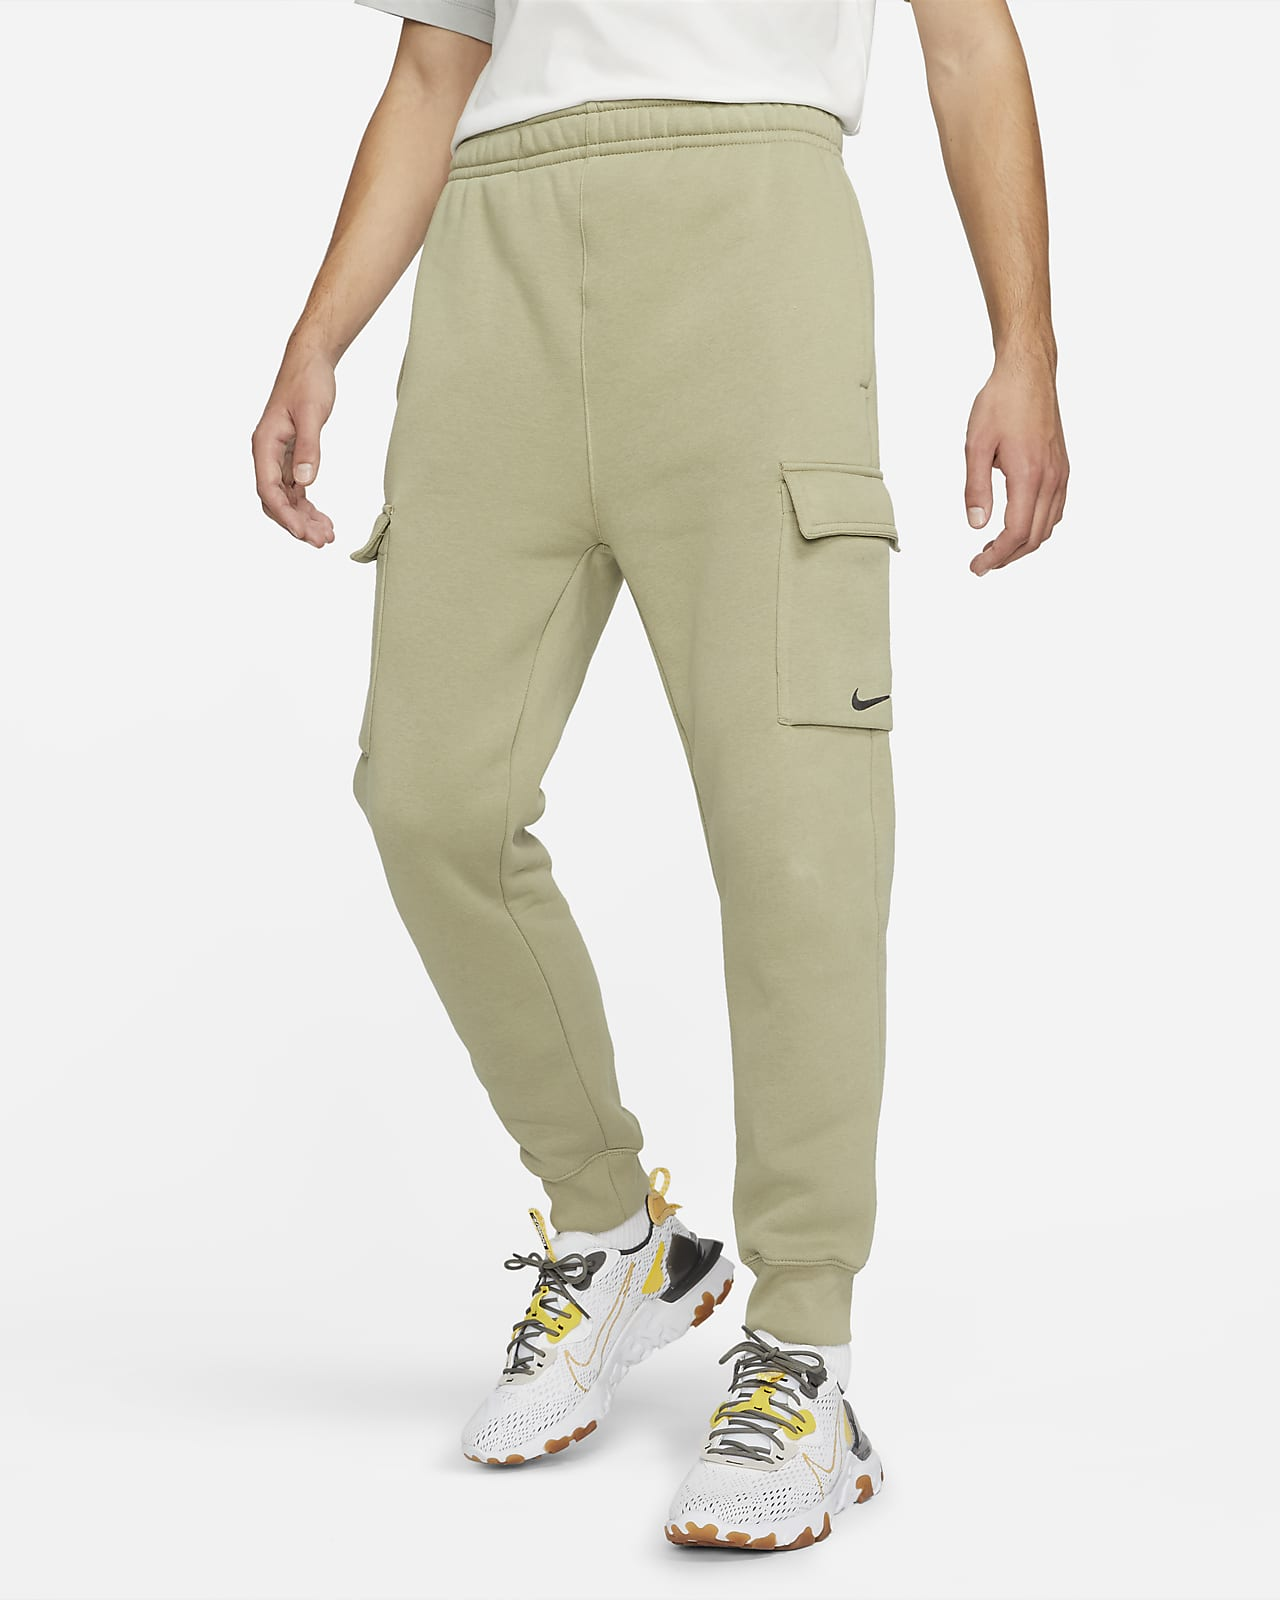 Nike Sportswear Men's Fleece Cargo Trousers